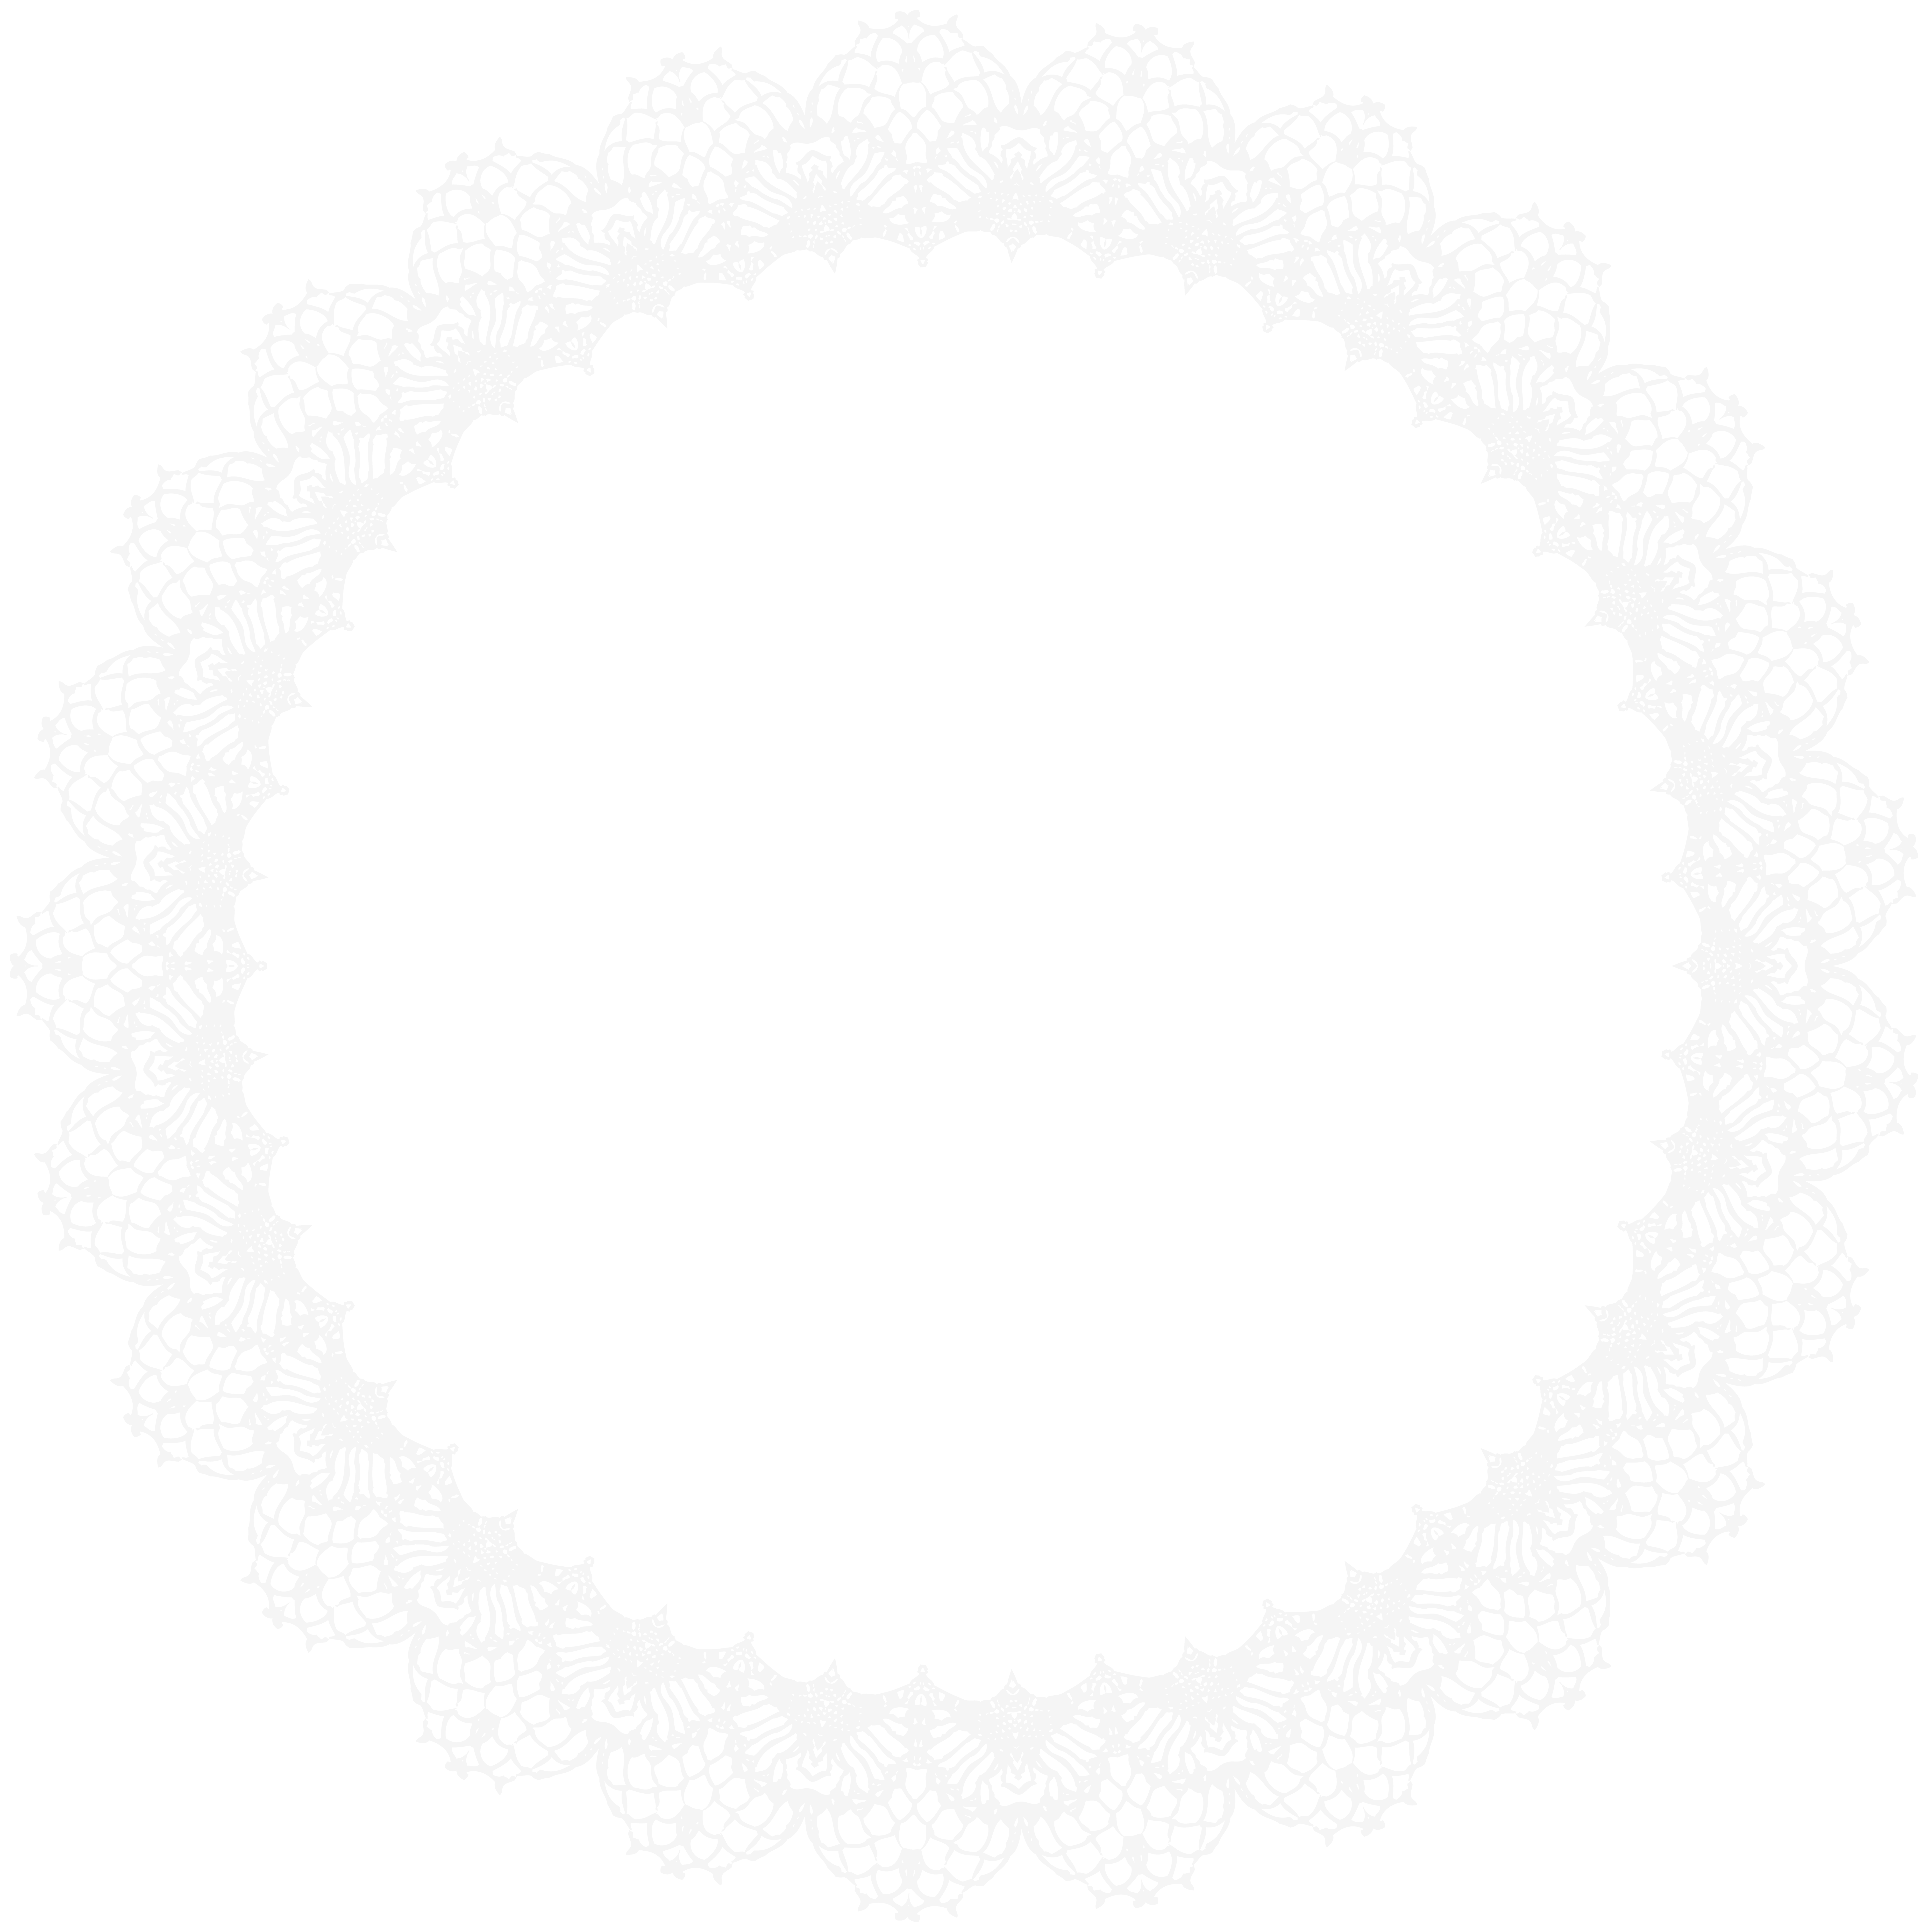 Gold clipart doily. Lace border frame png